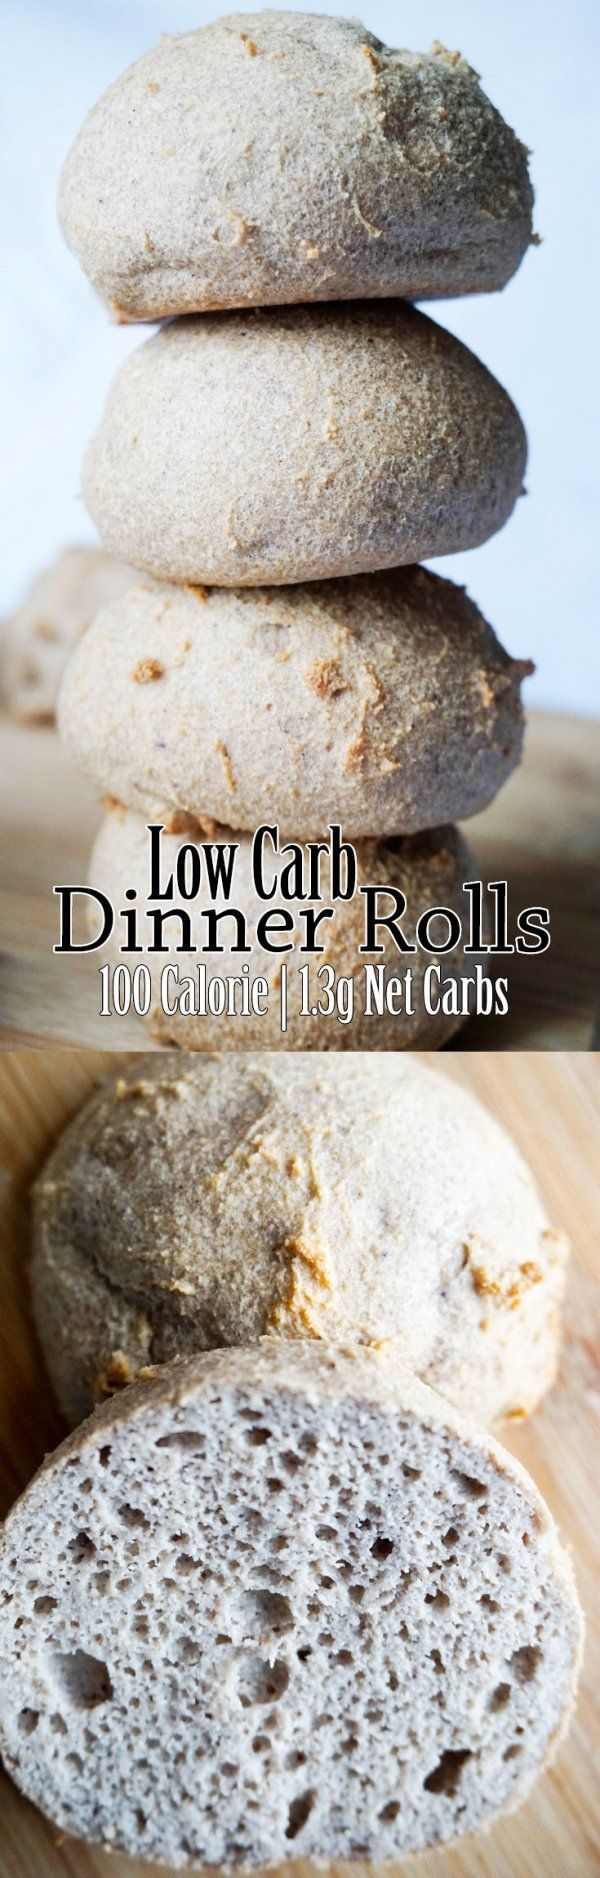 Low Carb Rolls - 100 Calories | 1.3g Net Carbs each!